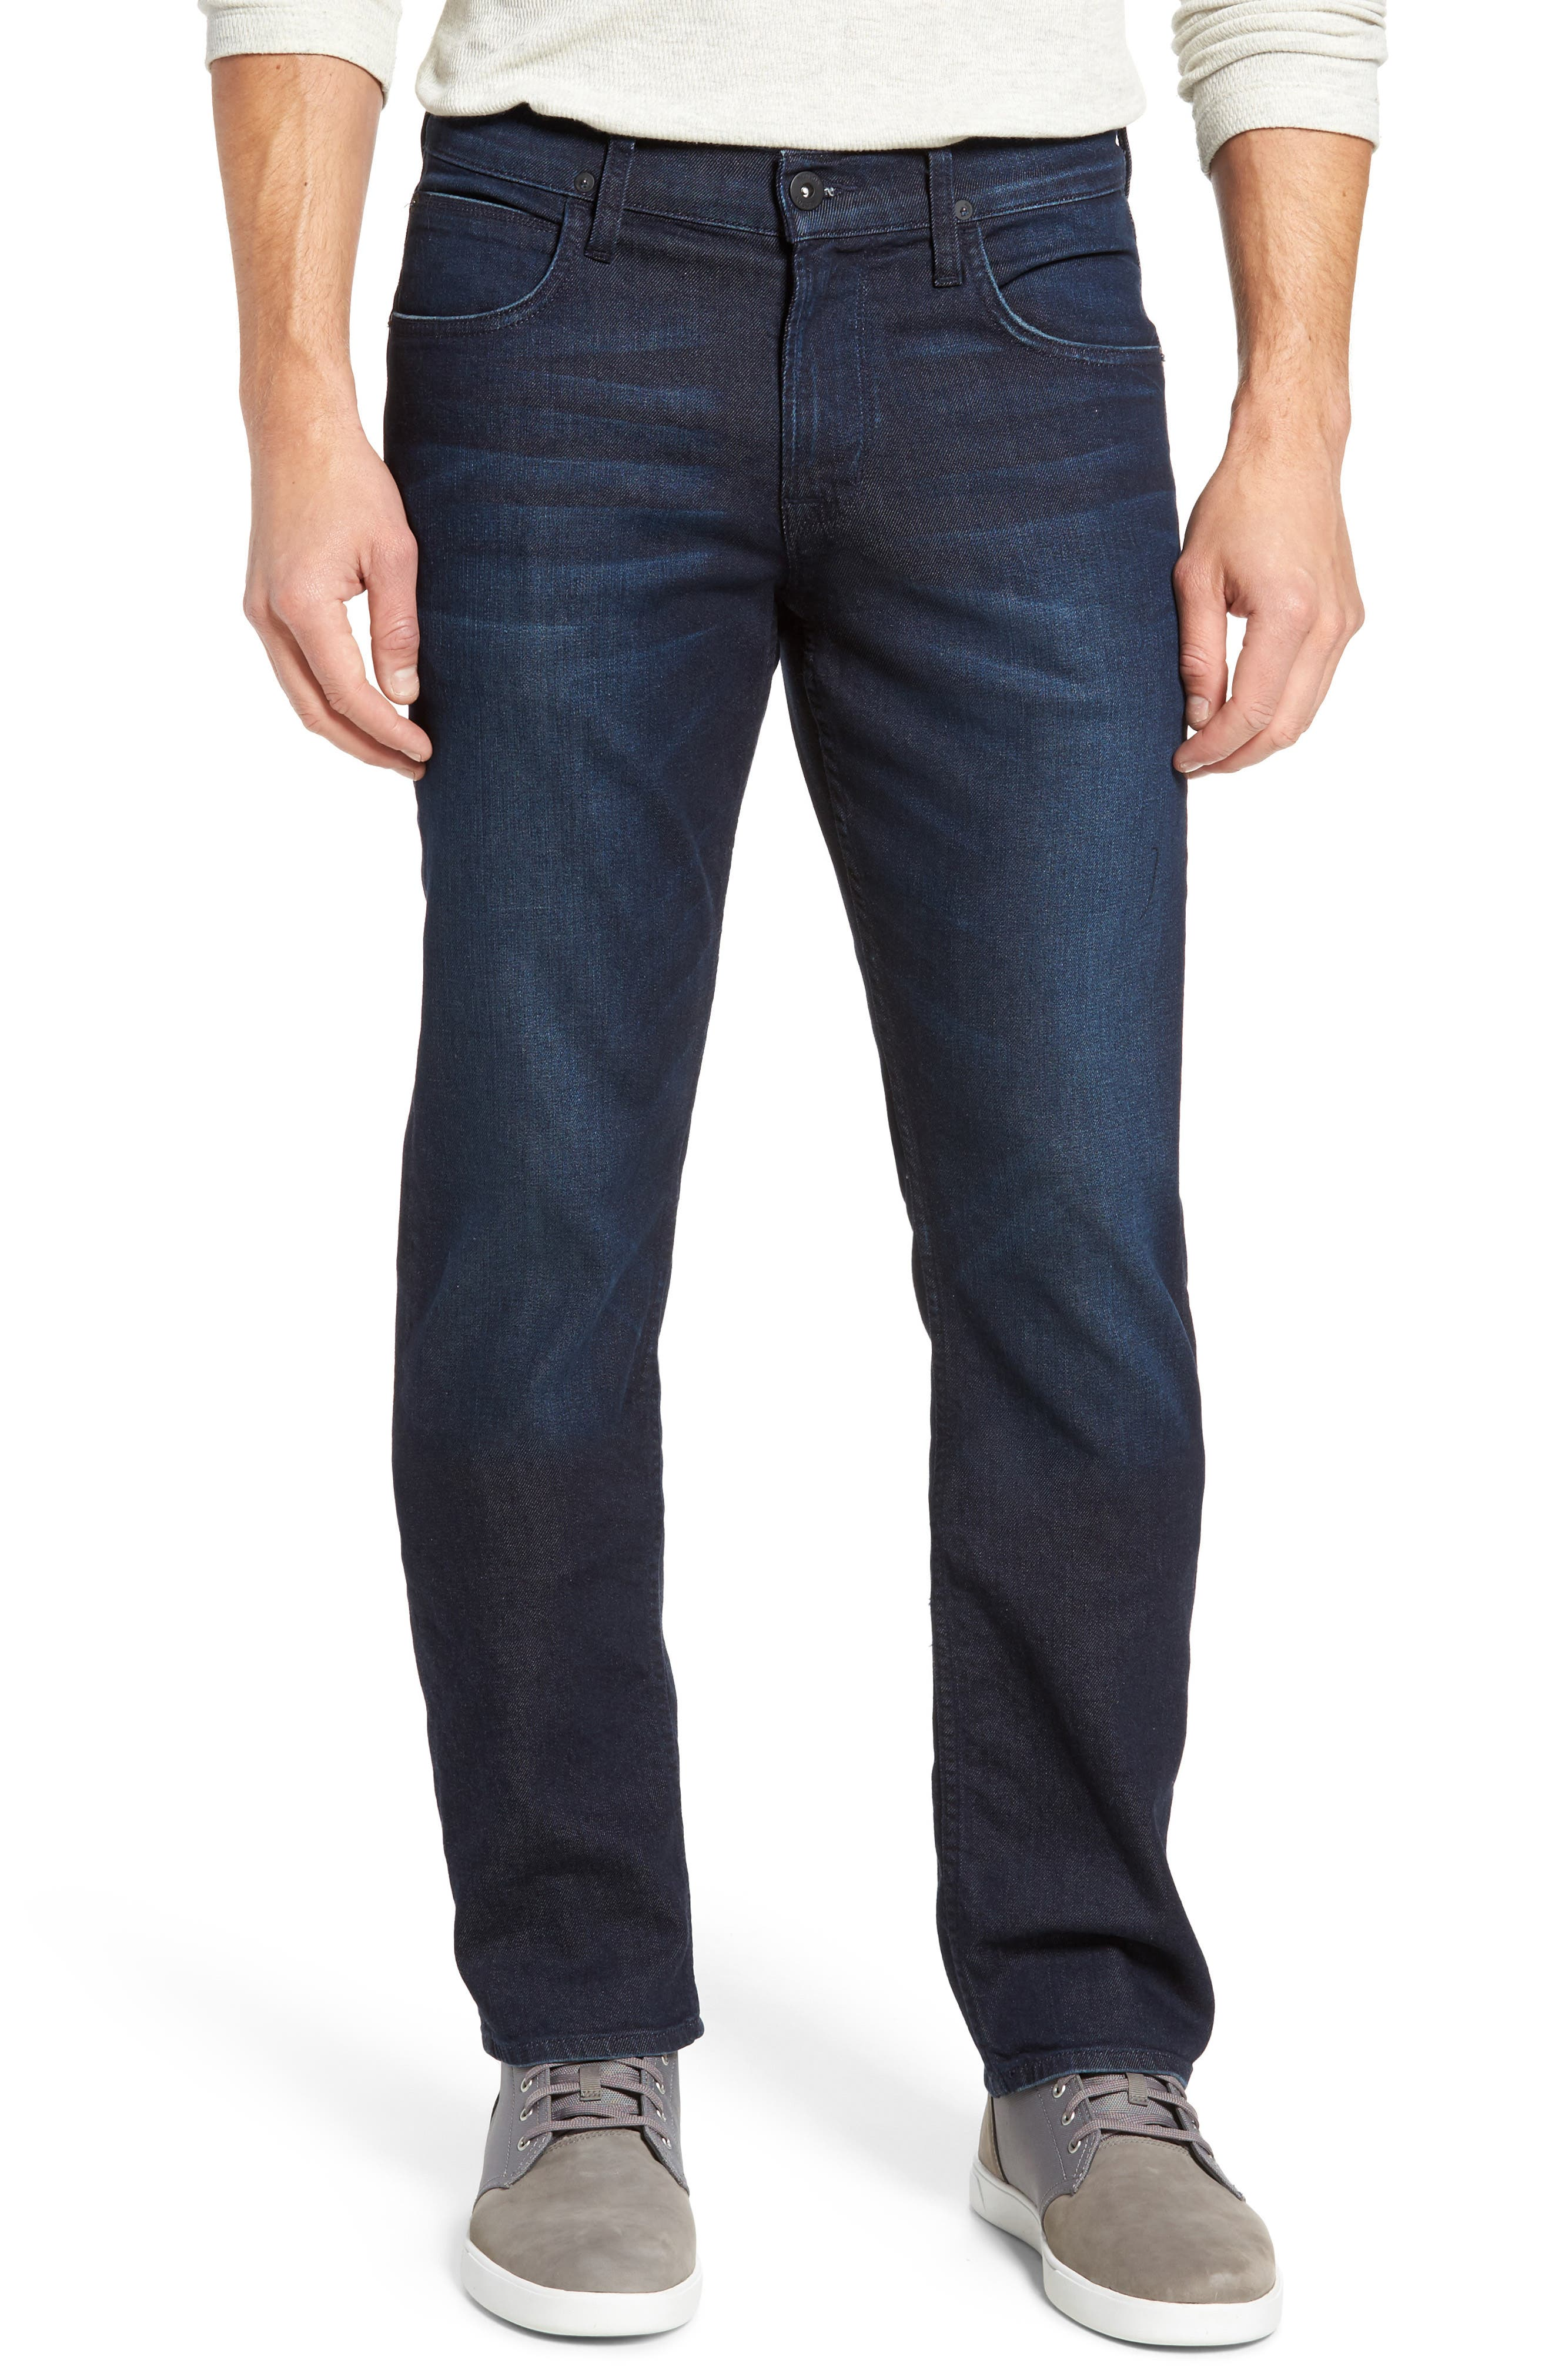 Byron Slim Straight Leg Jeans,                         Main,                         color, Viral